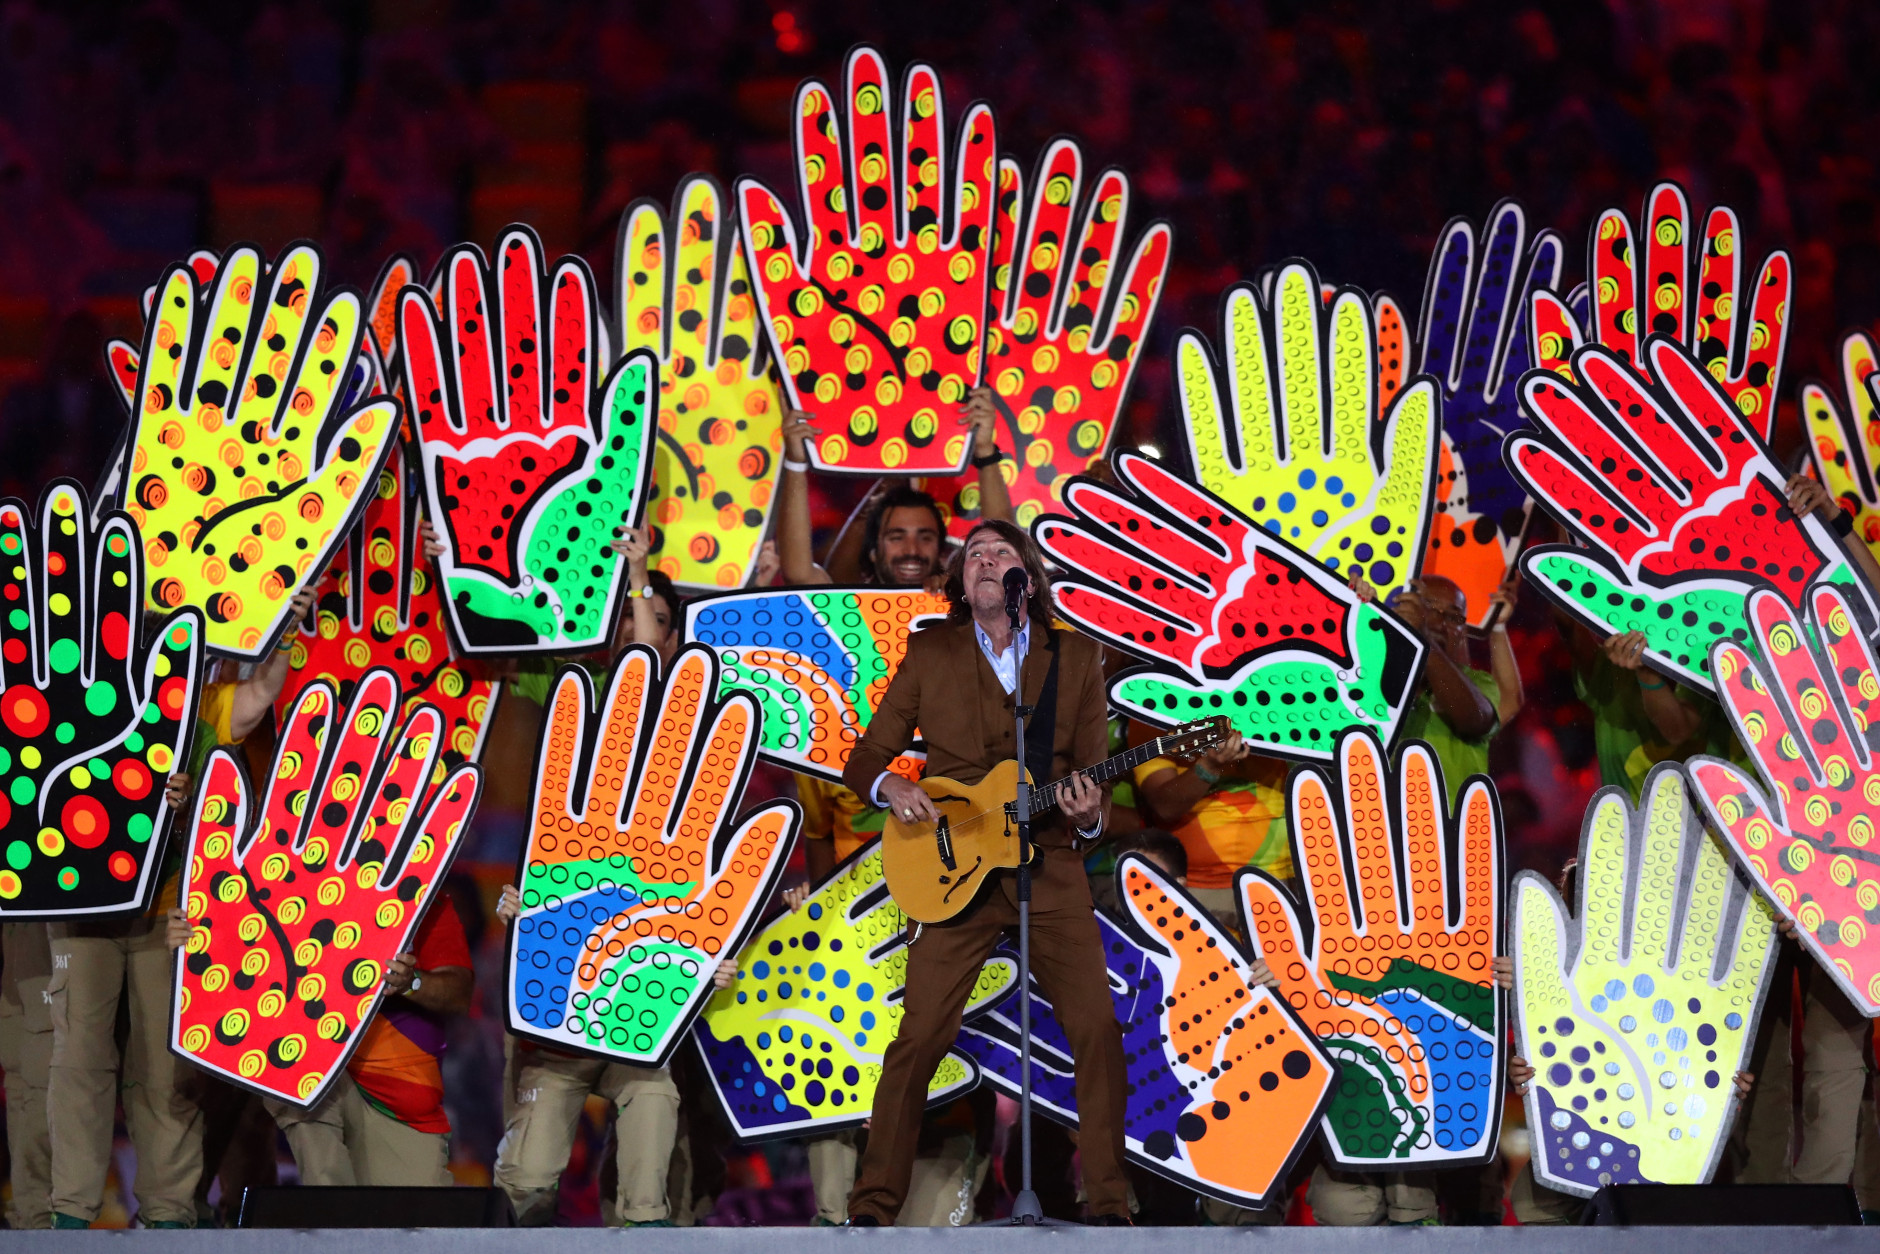 RIO DE JANEIRO, BRAZIL - AUGUST 21:  Singer Lenine performs during the Recognition of the Volunteers segment during the Closing Ceremony on Day 16 of the Rio 2016 Olympic Games at Maracana Stadium on August 21, 2016 in Rio de Janeiro, Brazil.  (Photo by Ezra Shaw/Getty Images)